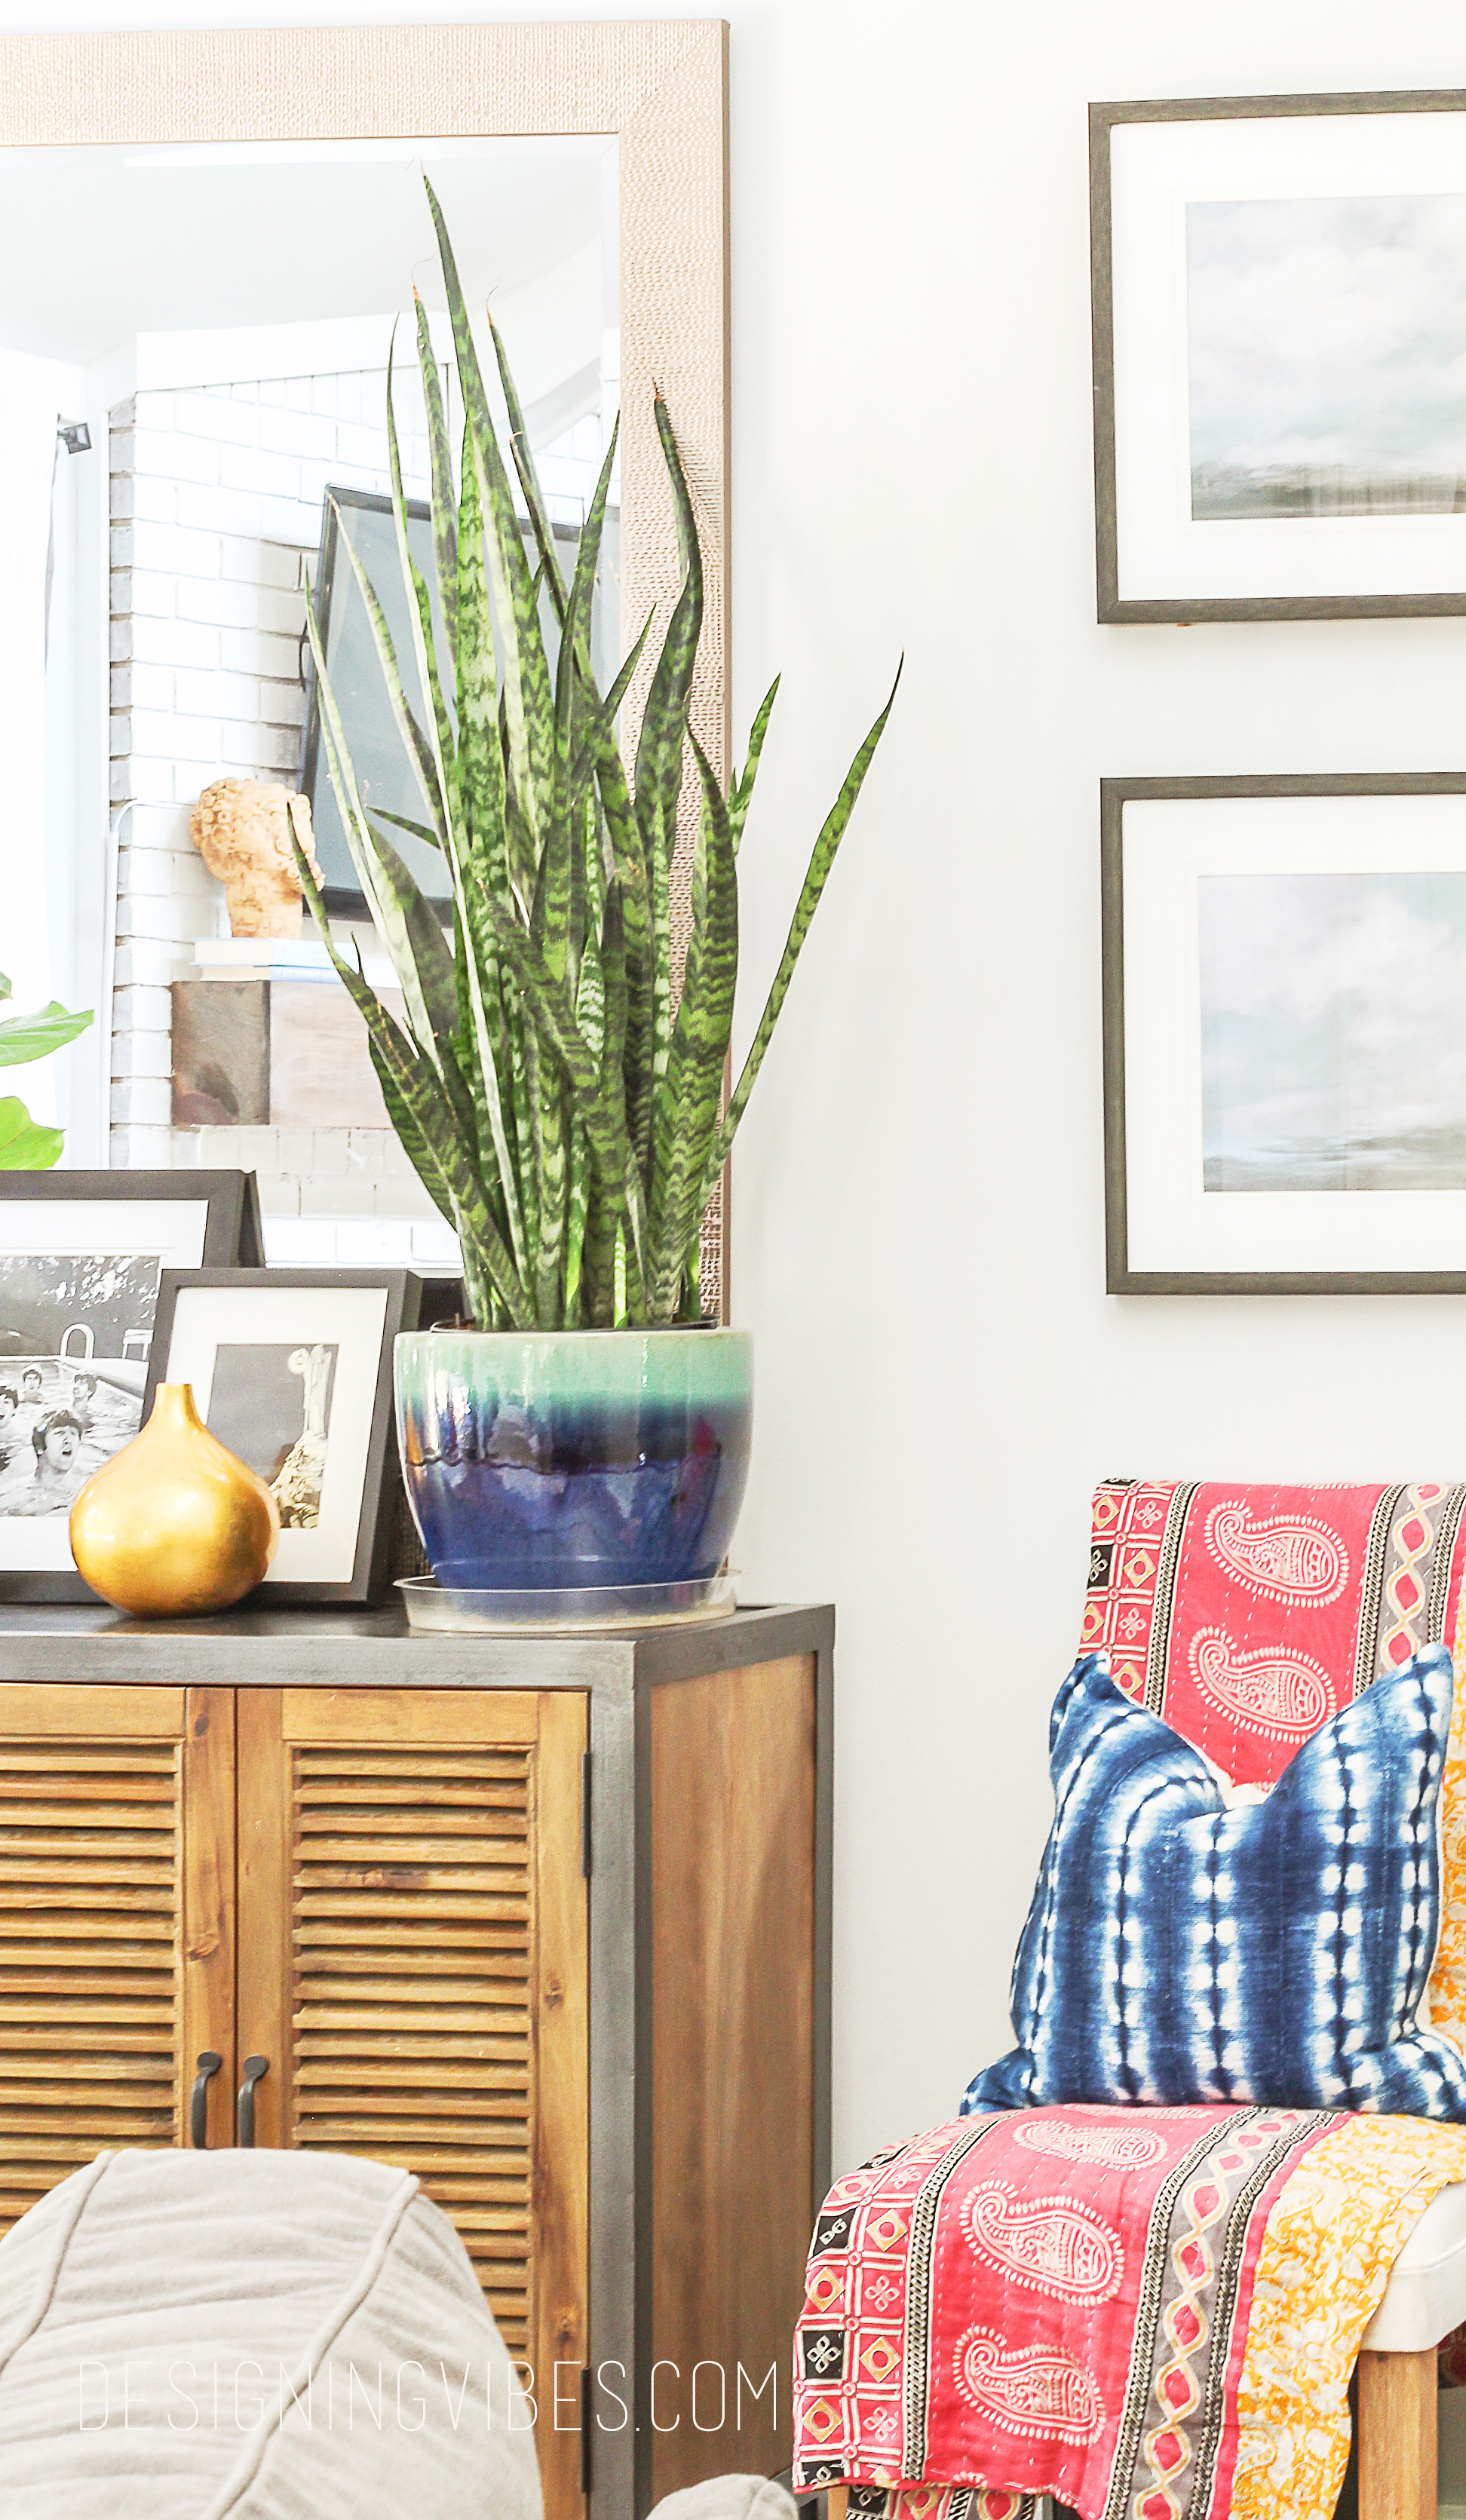 Summer Eclectic Home Tour- Boho Chic Decor